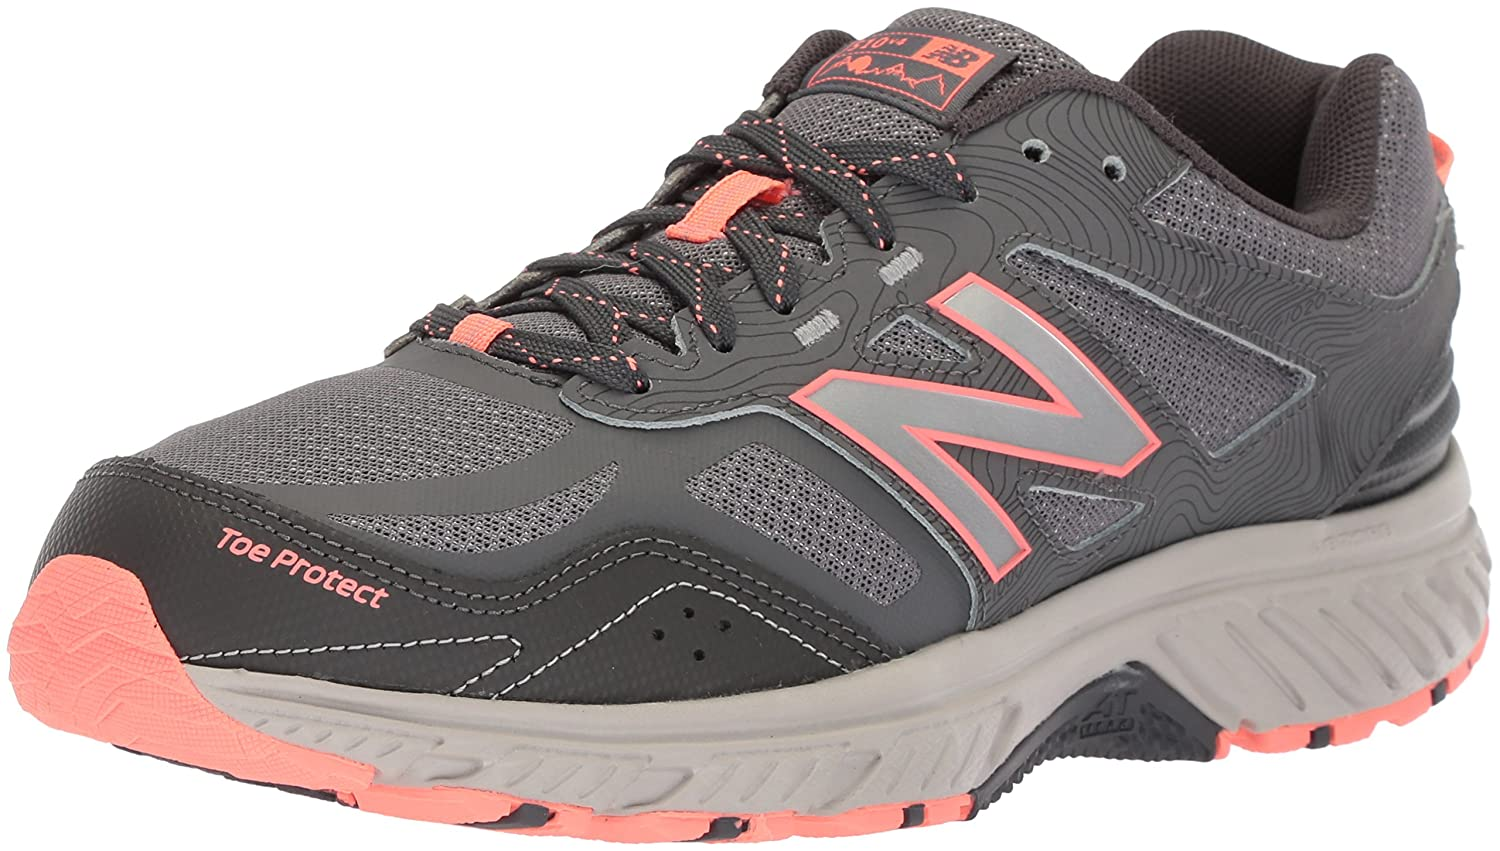 New Balance Women's 510v4 Cushioning Trail B(M) Running Shoe B0751Q8LXK 9.5 B(M) Trail US|Steel 4a83c5